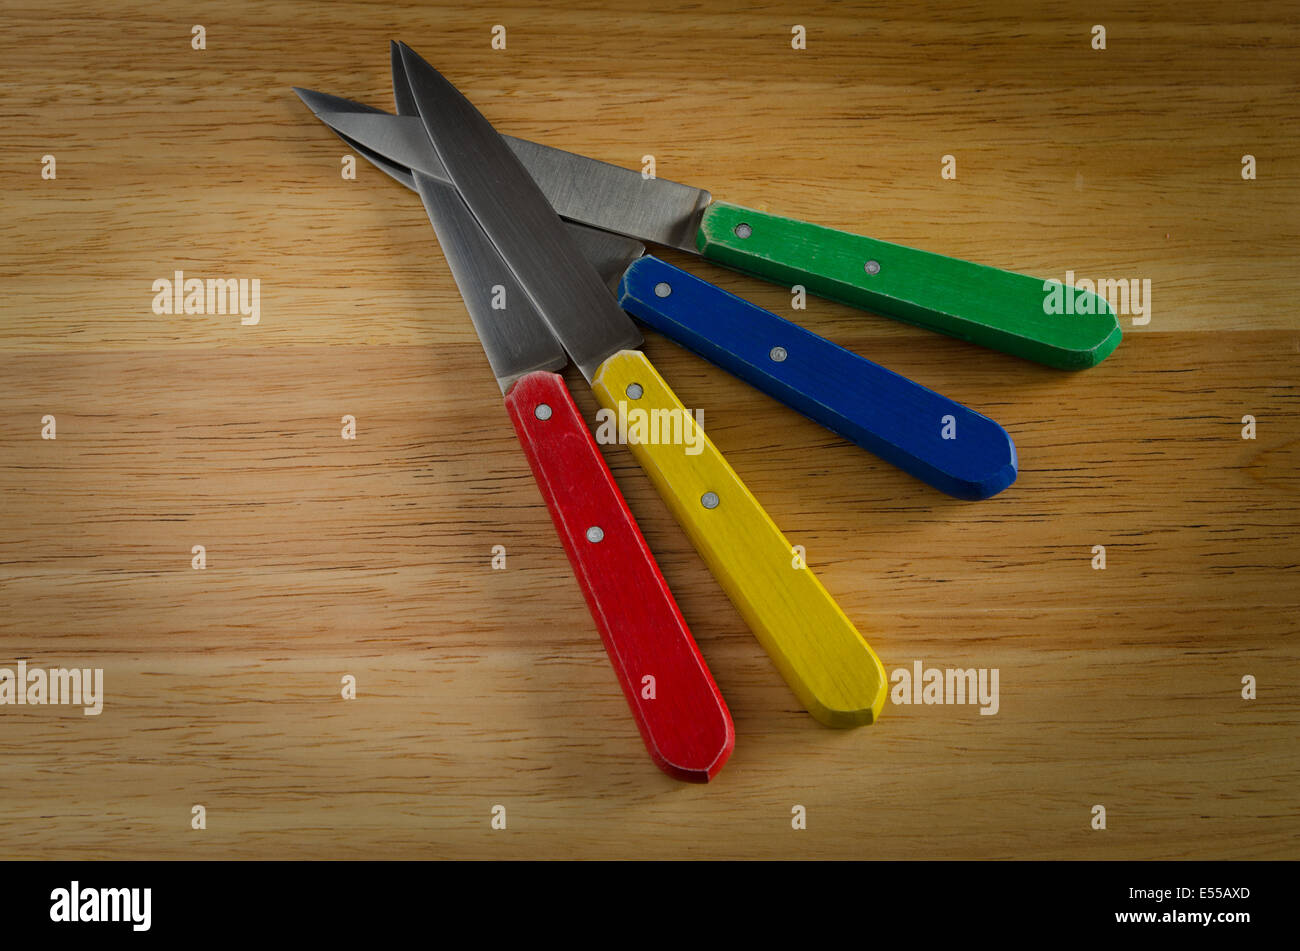 knifes on wood, red, yellow, blue, green - Stock Image